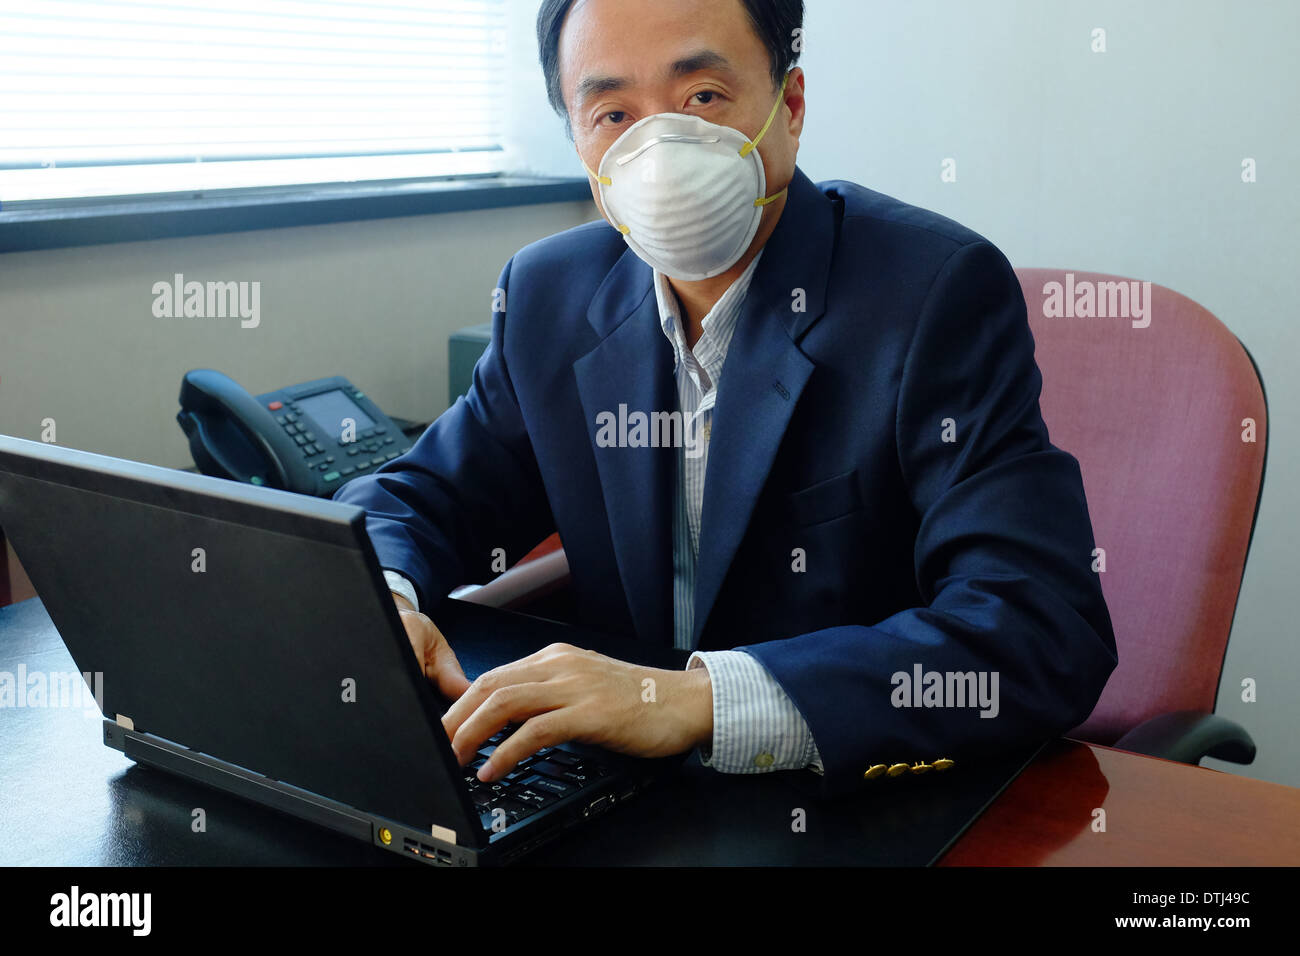 Asian man wearing a face mask inside office due to air pollution - Stock Image